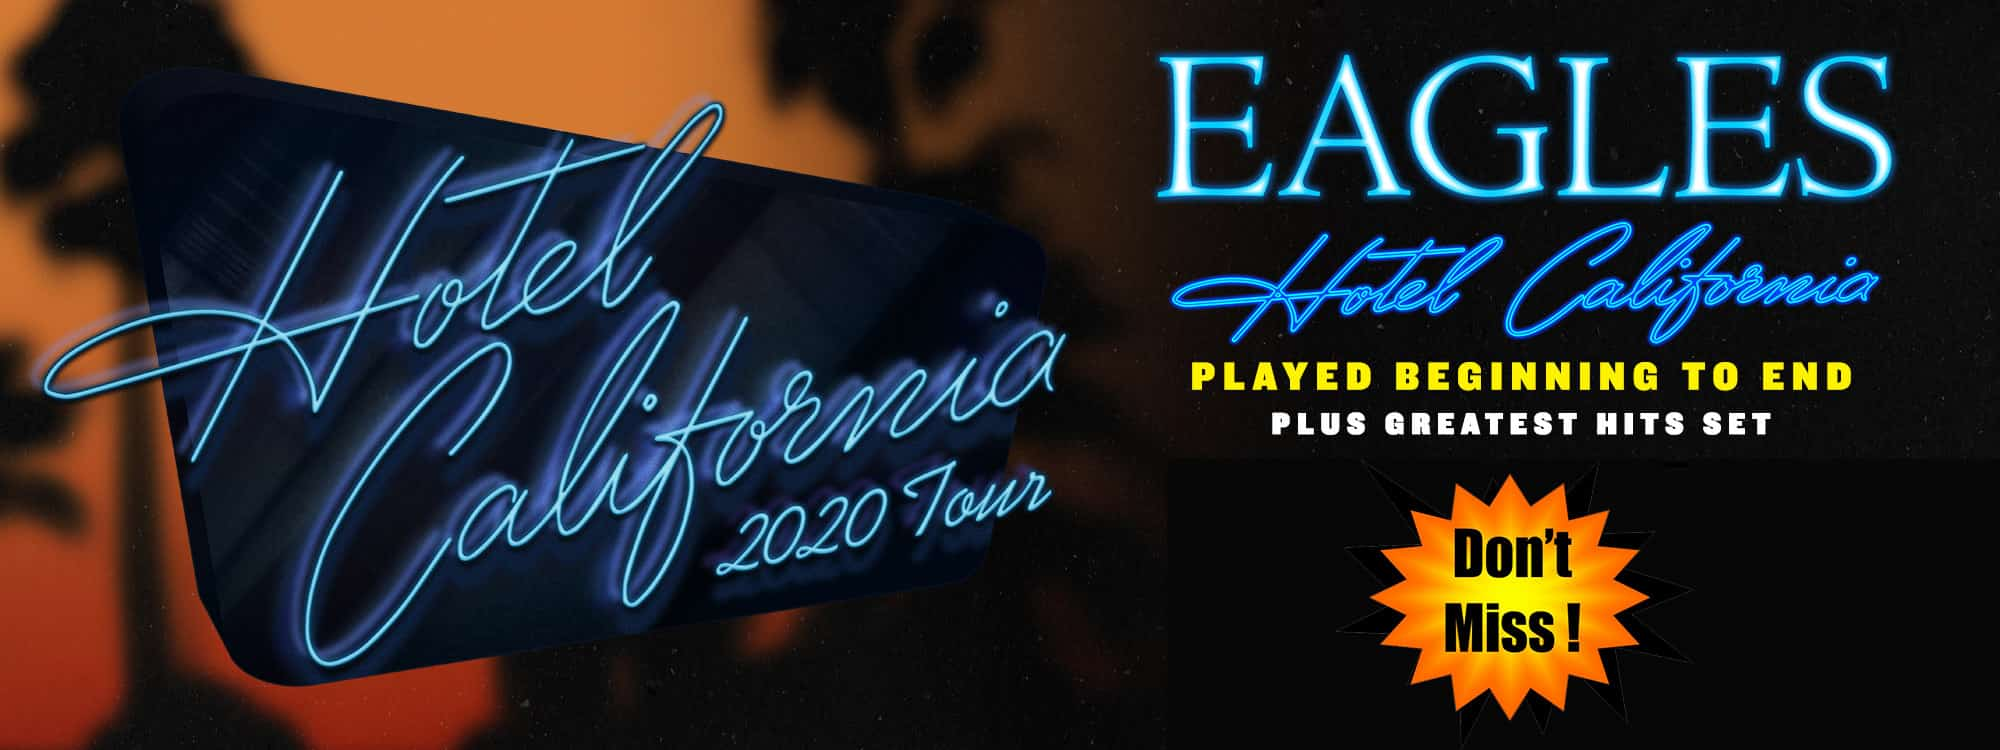 eagles-tour-2020